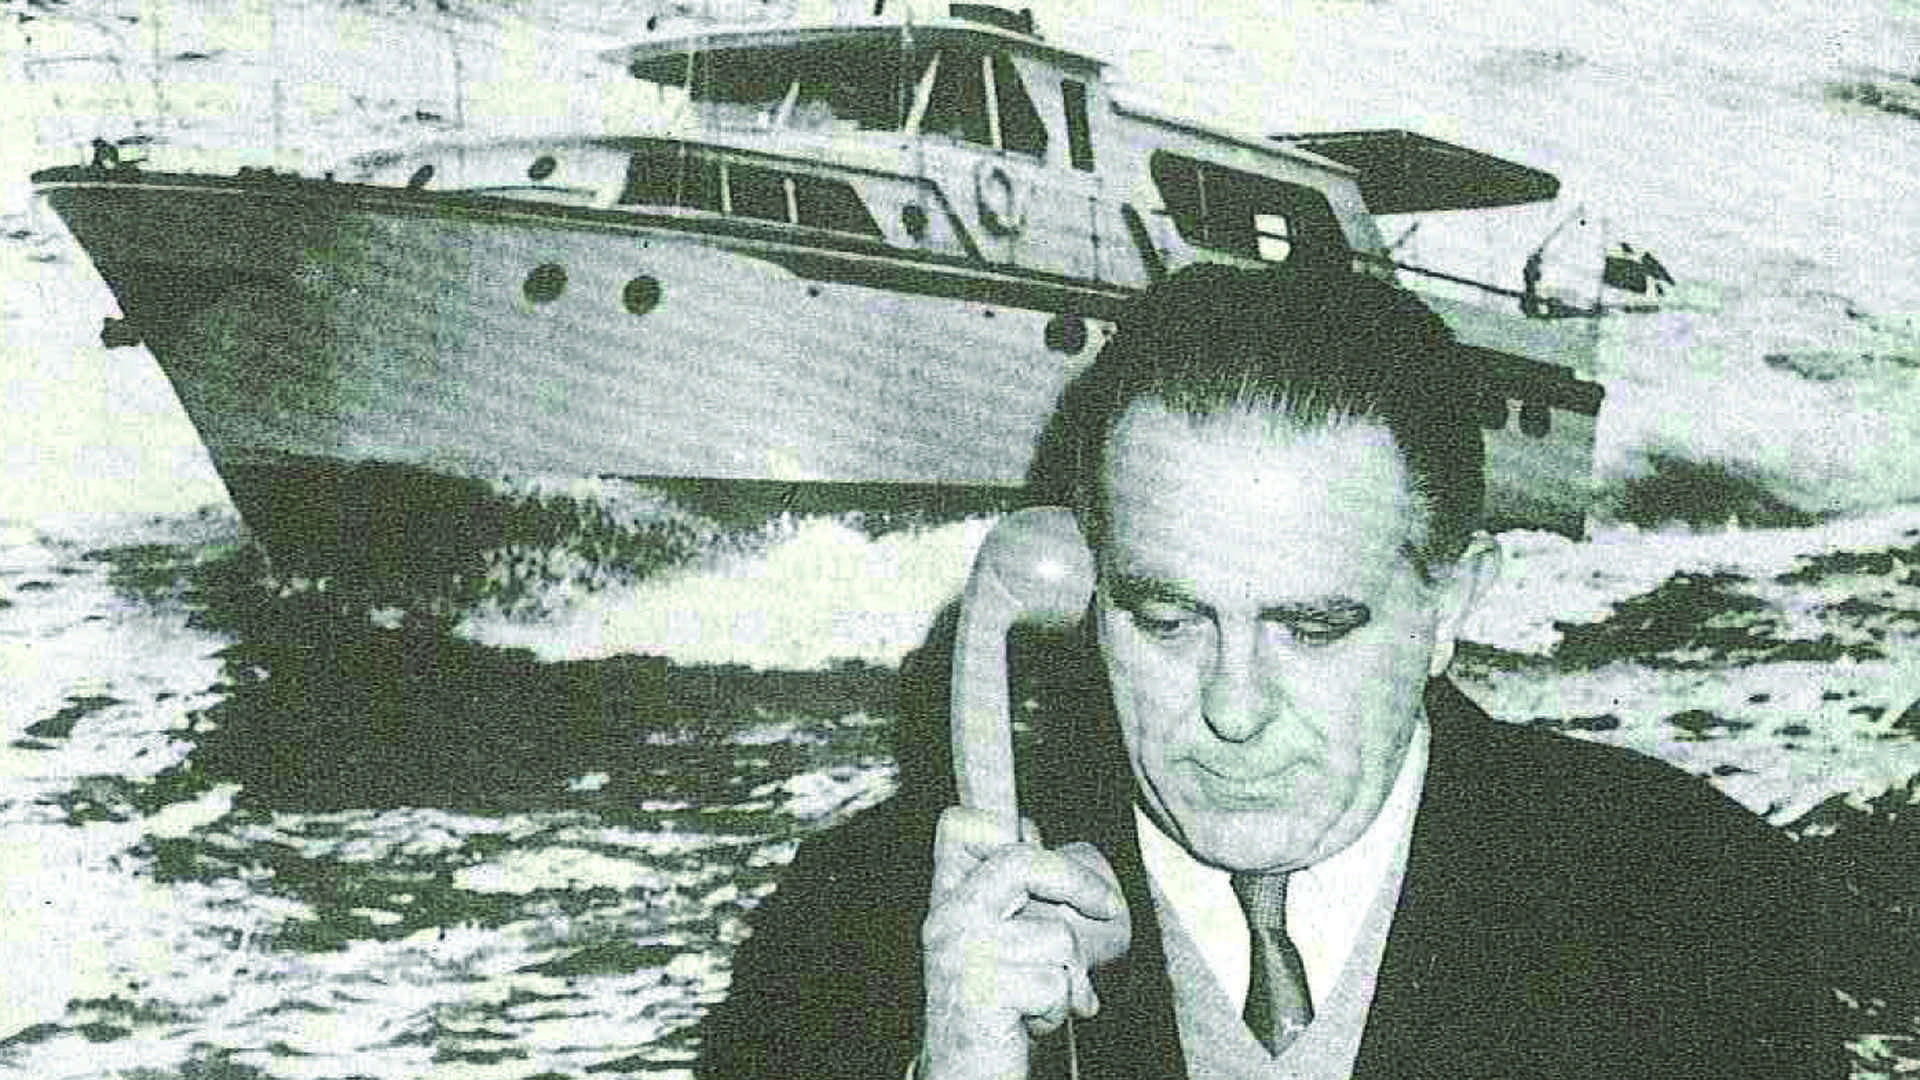 1963 - With Emilio Benetti's death, the management of the Fratelli benetti shipyard is handed doqn to his nephew Giuseppe and Giuseppe's youngest son, Lorenzo. The latter, making the previous generation's legacy his own, will later become a protagonist in the sector of international luxury yacht construction. www.benettiyachts.it